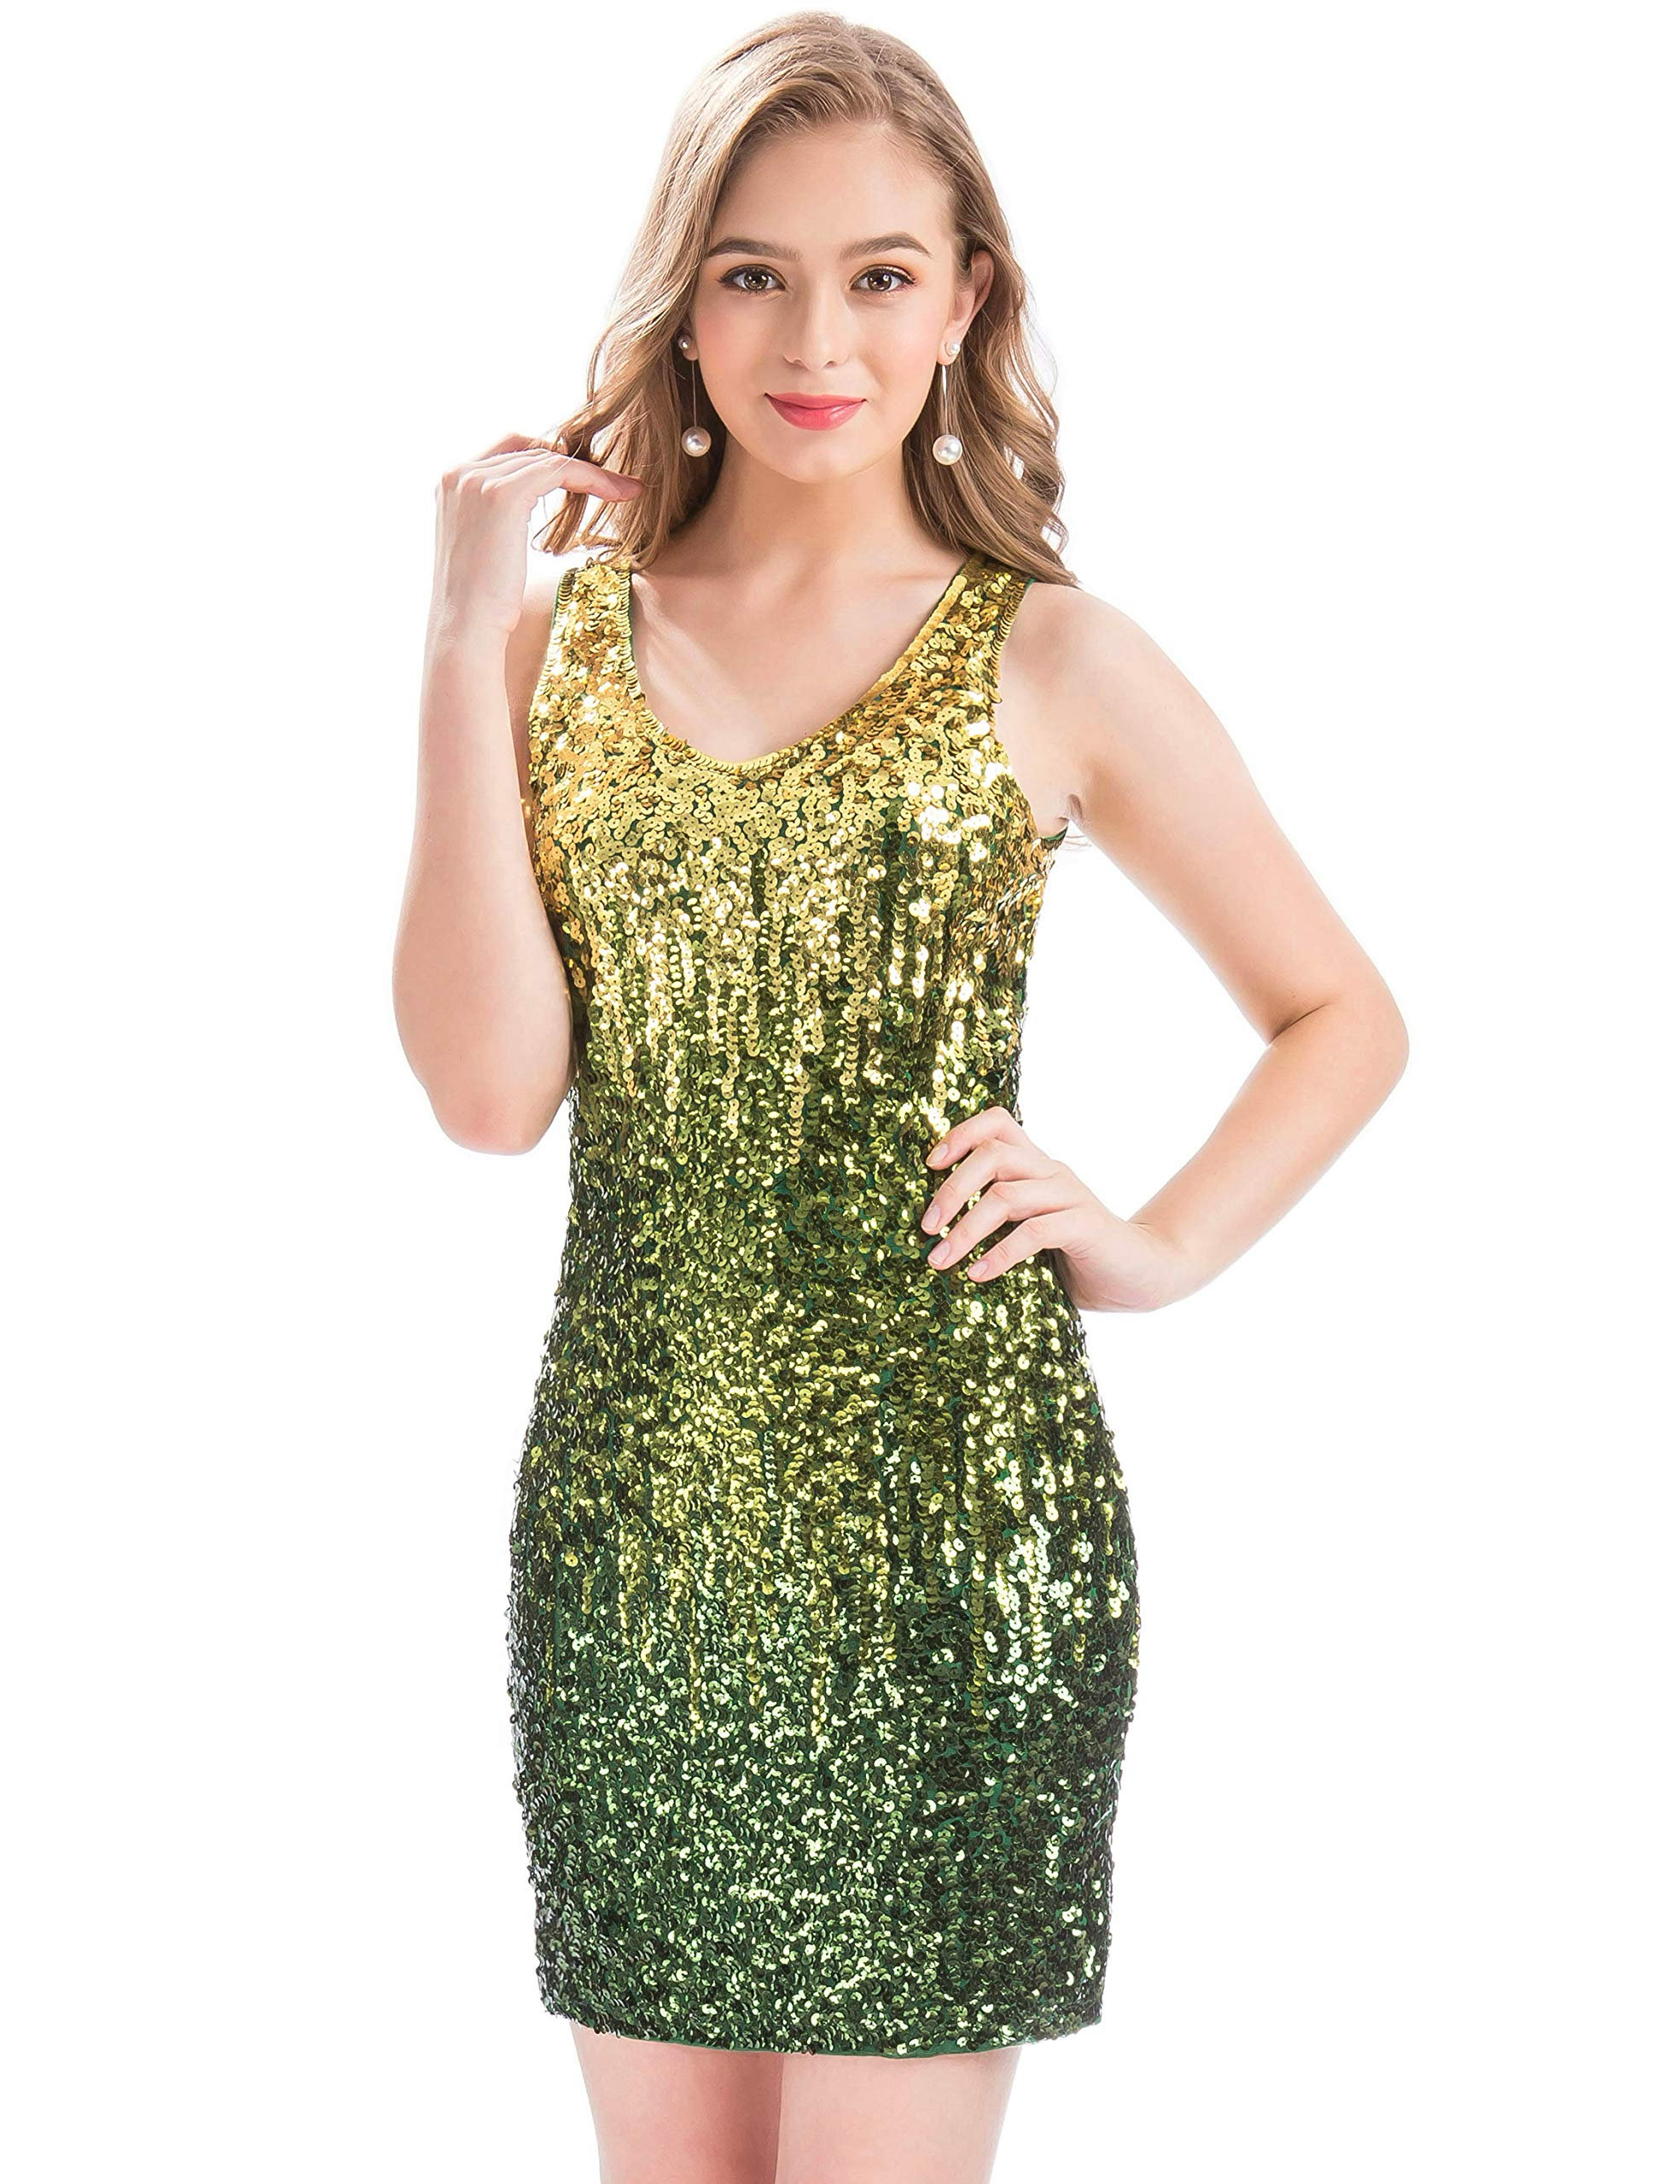 ef7dd3fa63e2 MANER Women's Sexy V Neck Sequin Glitter Bodycon Stretchy Club Mini Party  Dress (S, Lemon/Emerald Green/Dark Green)